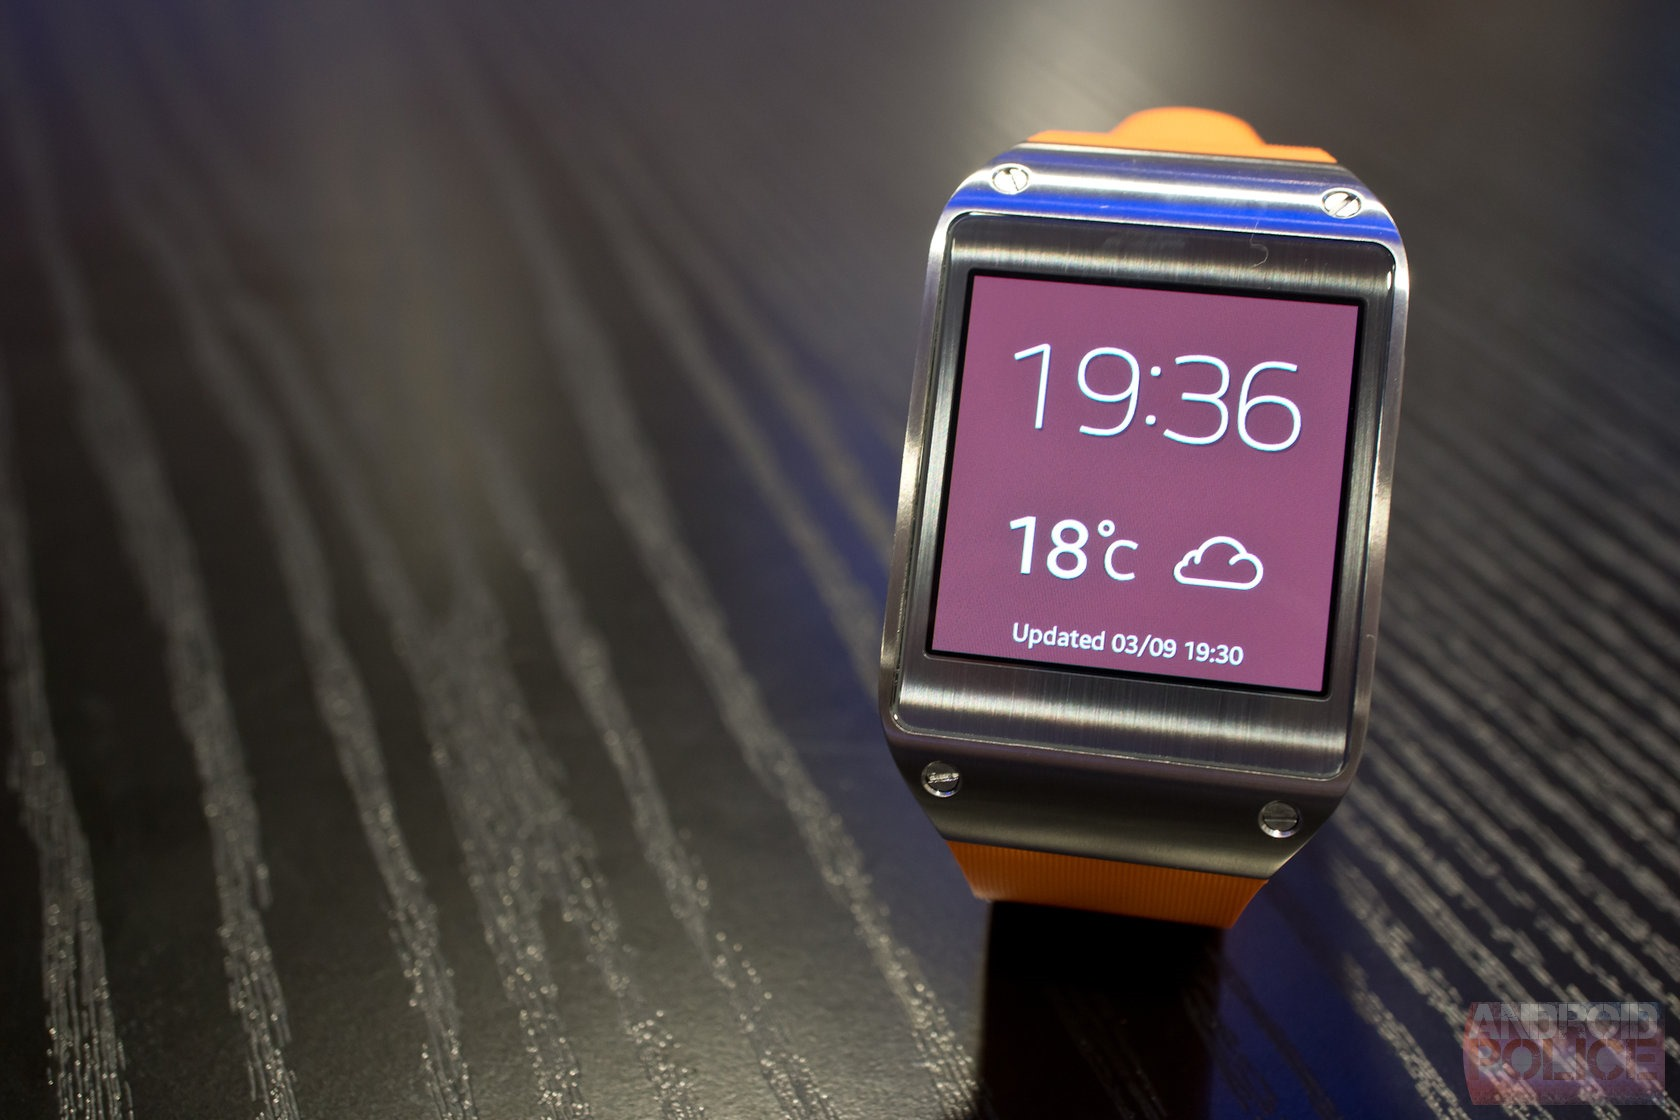 Hands-On (And Video) With The Galaxy Gear At IFA 2013